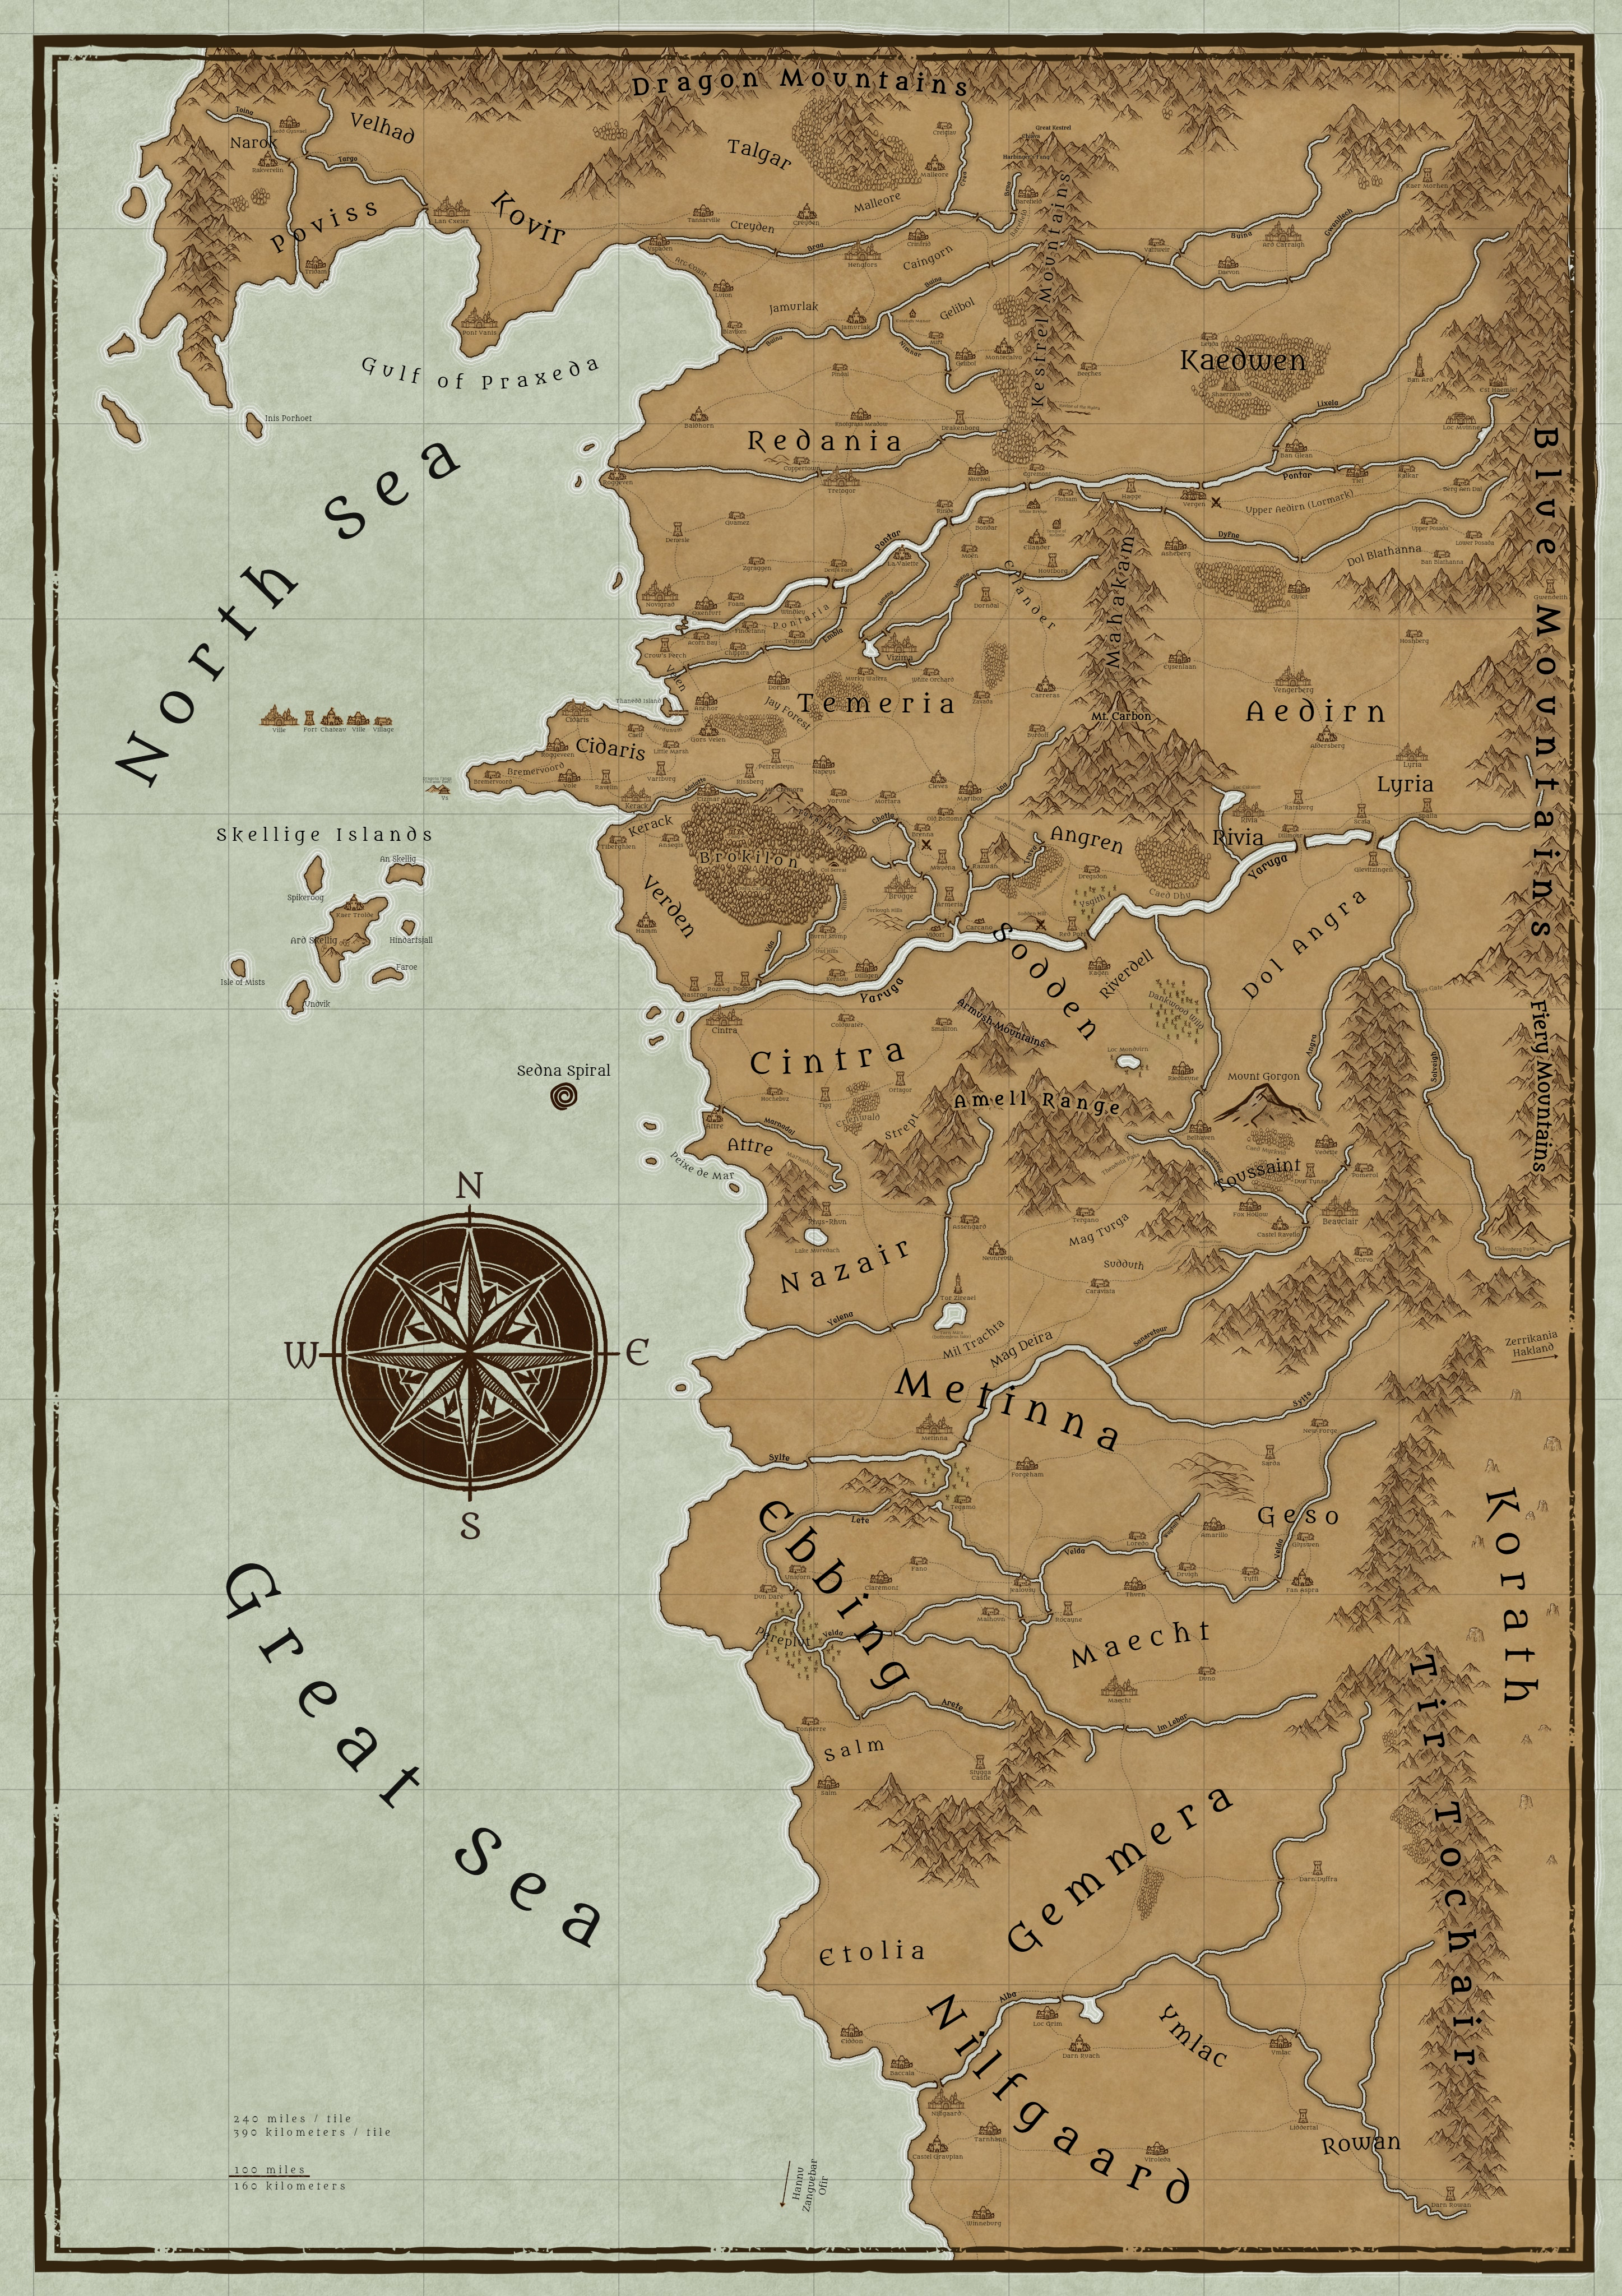 Witcher 3 Toussaint Map : witcher, toussaint, Continent, Witcher, Inkarnate